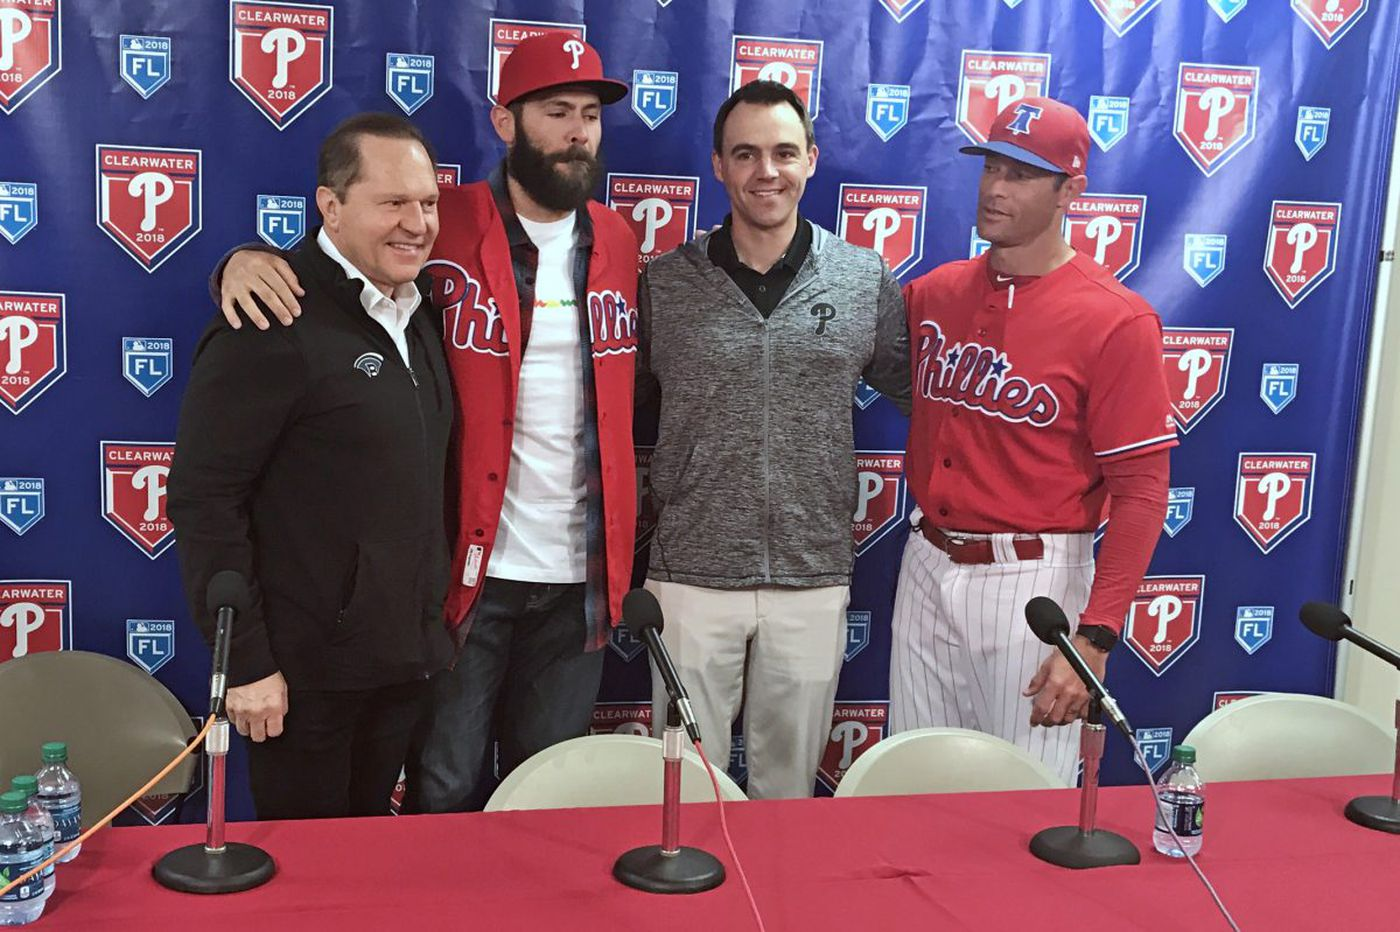 Jake Arrieta expects to be ready for start of Phillies season